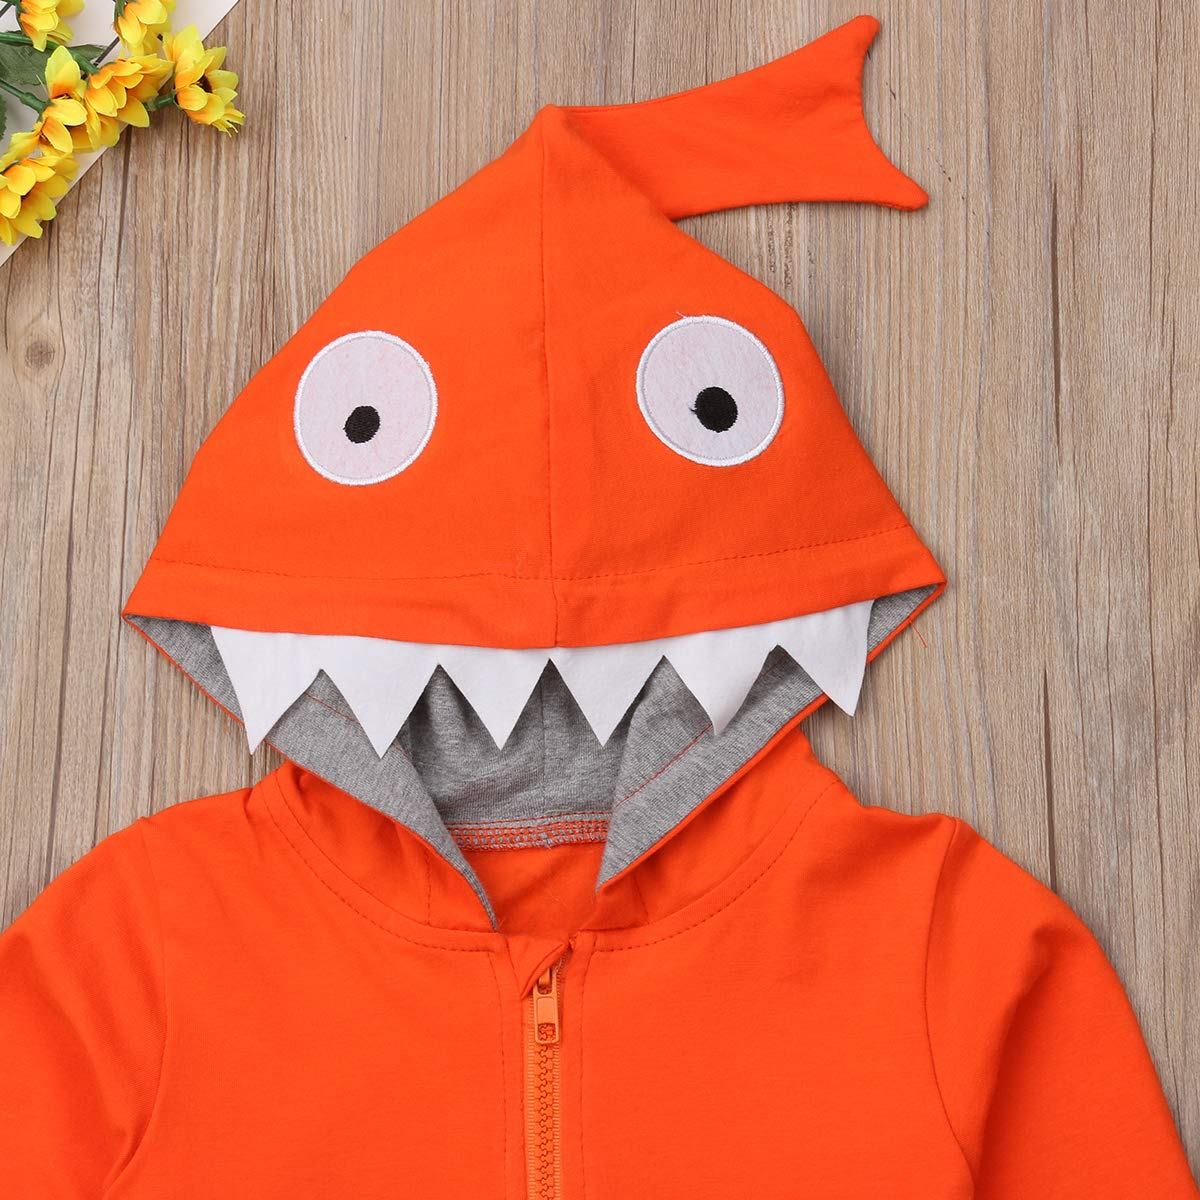 Kids Baby Boy Girl Jumper Coat Shark Jacket Hood Clothes Tops Toddler with Kangaroo Pockets Hoodies Outerwear for 1-5T